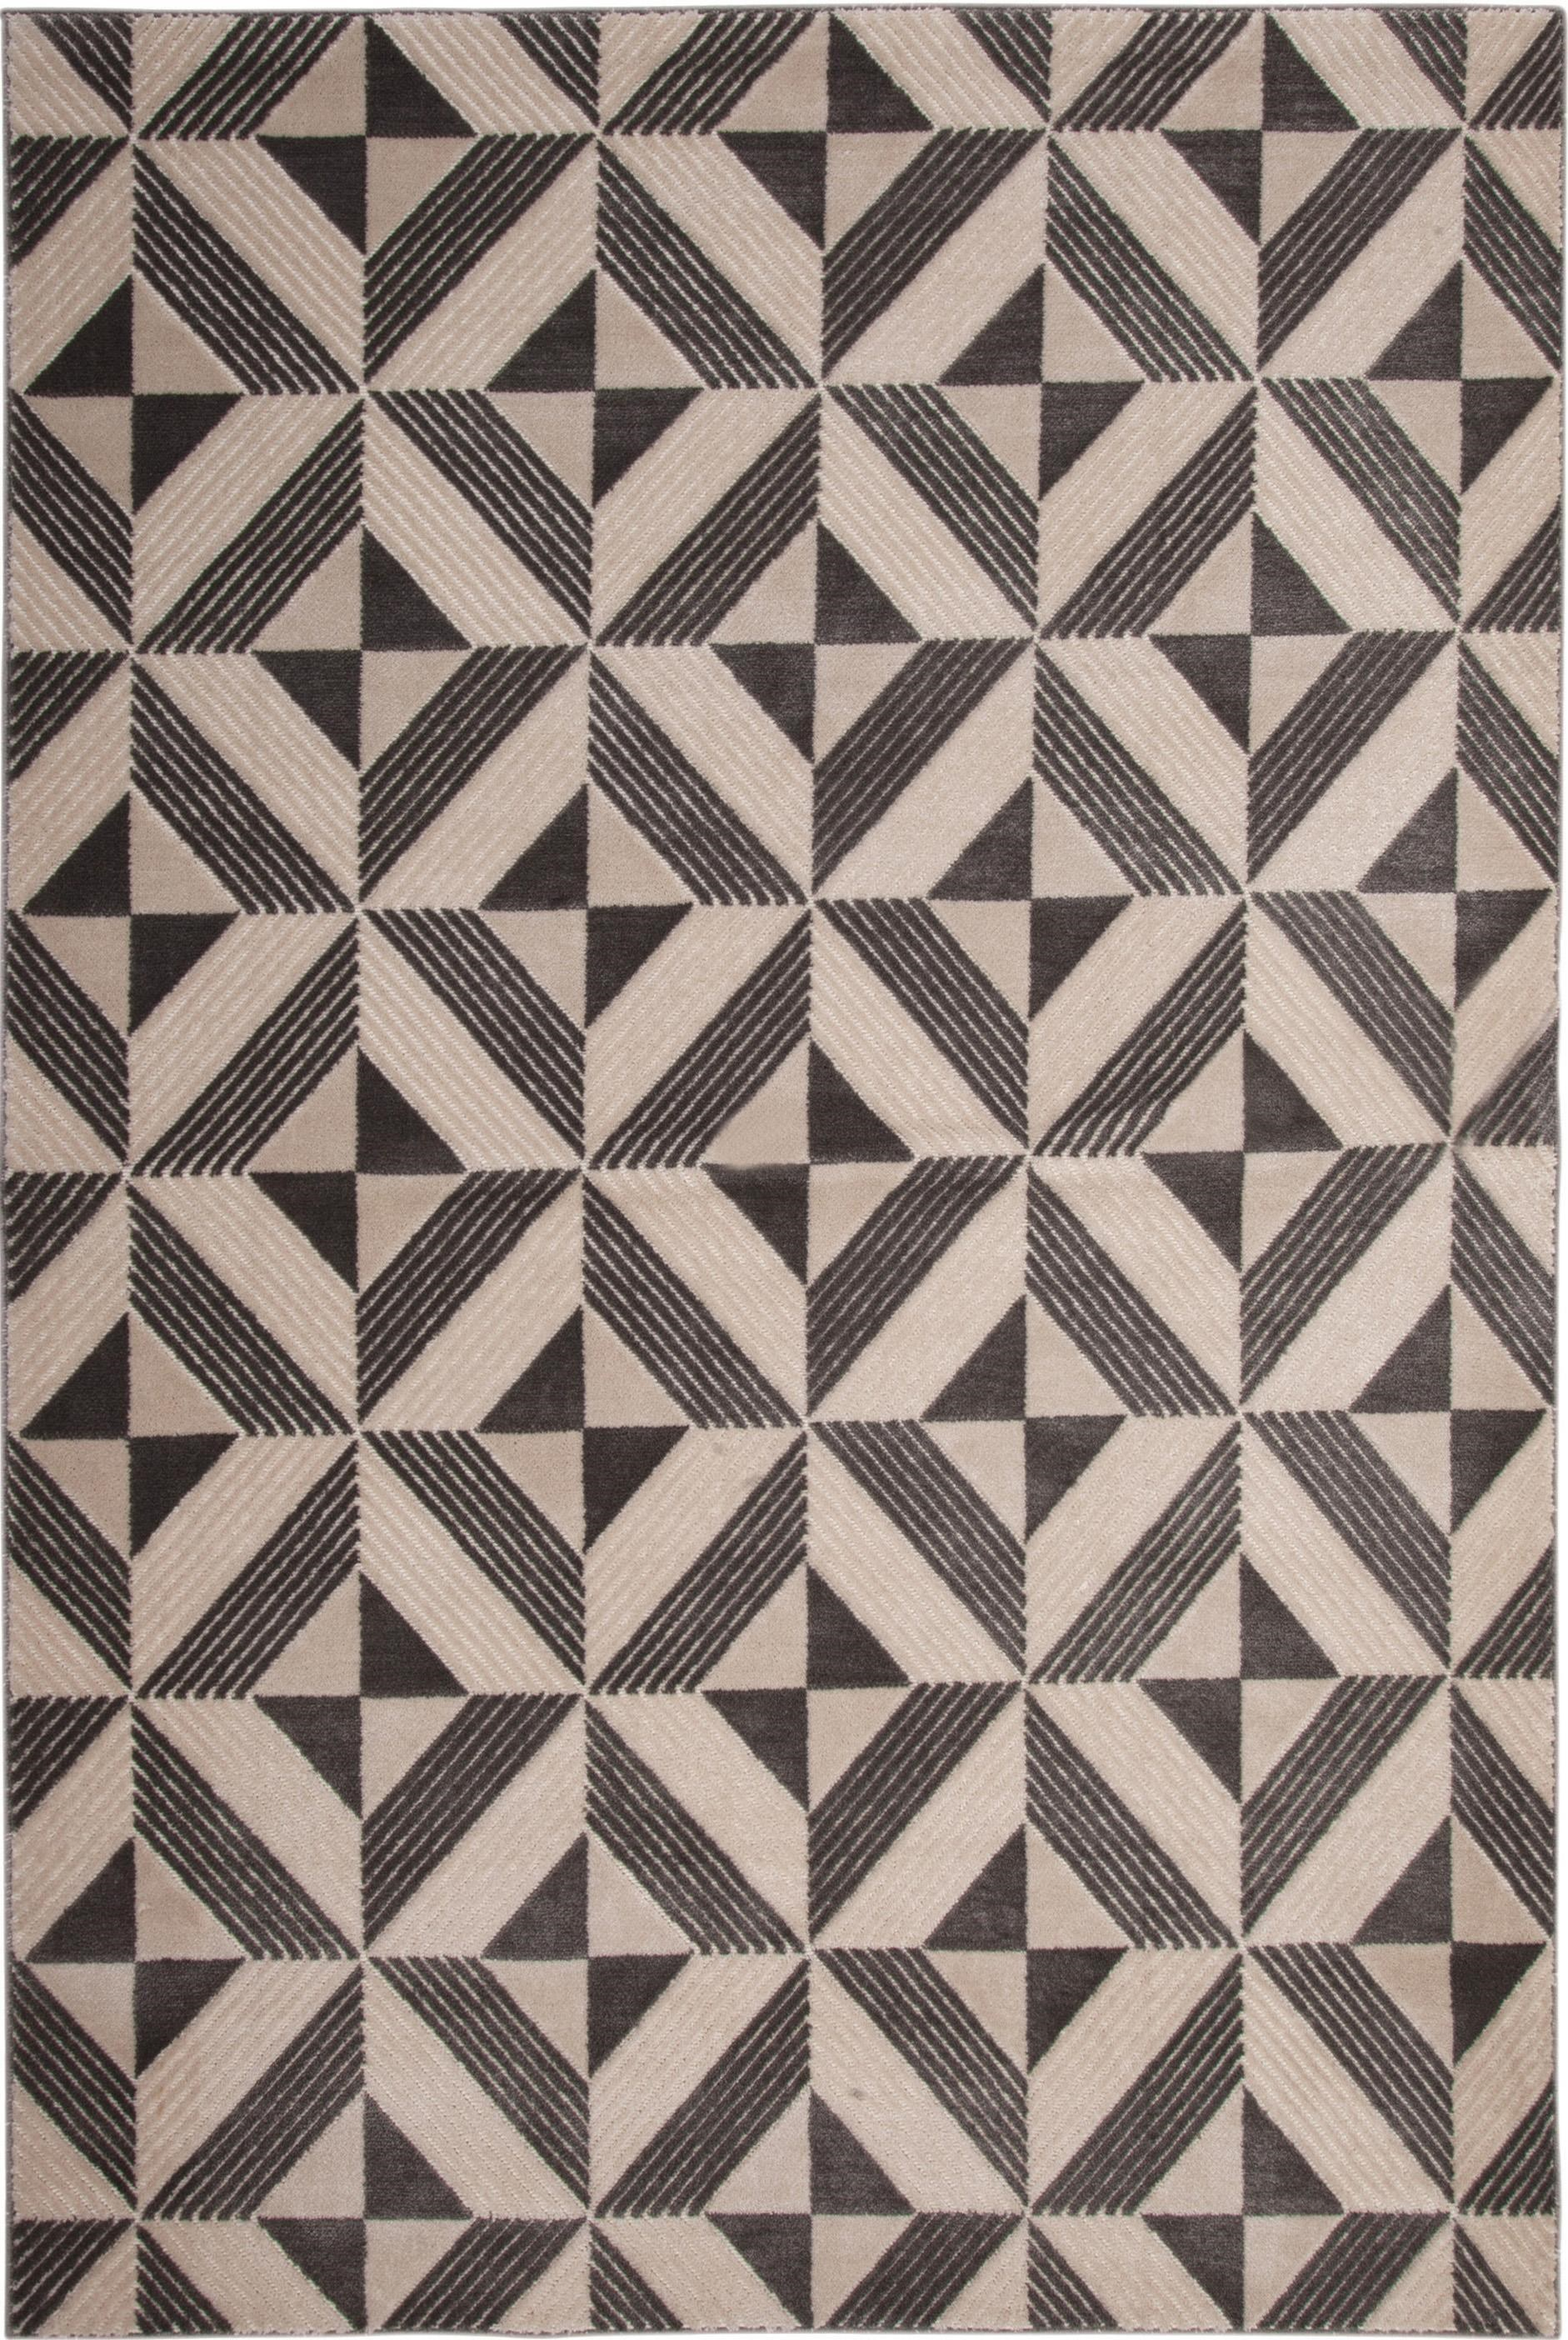 Metro 5x8 Rug by SAMS International at Red Knot